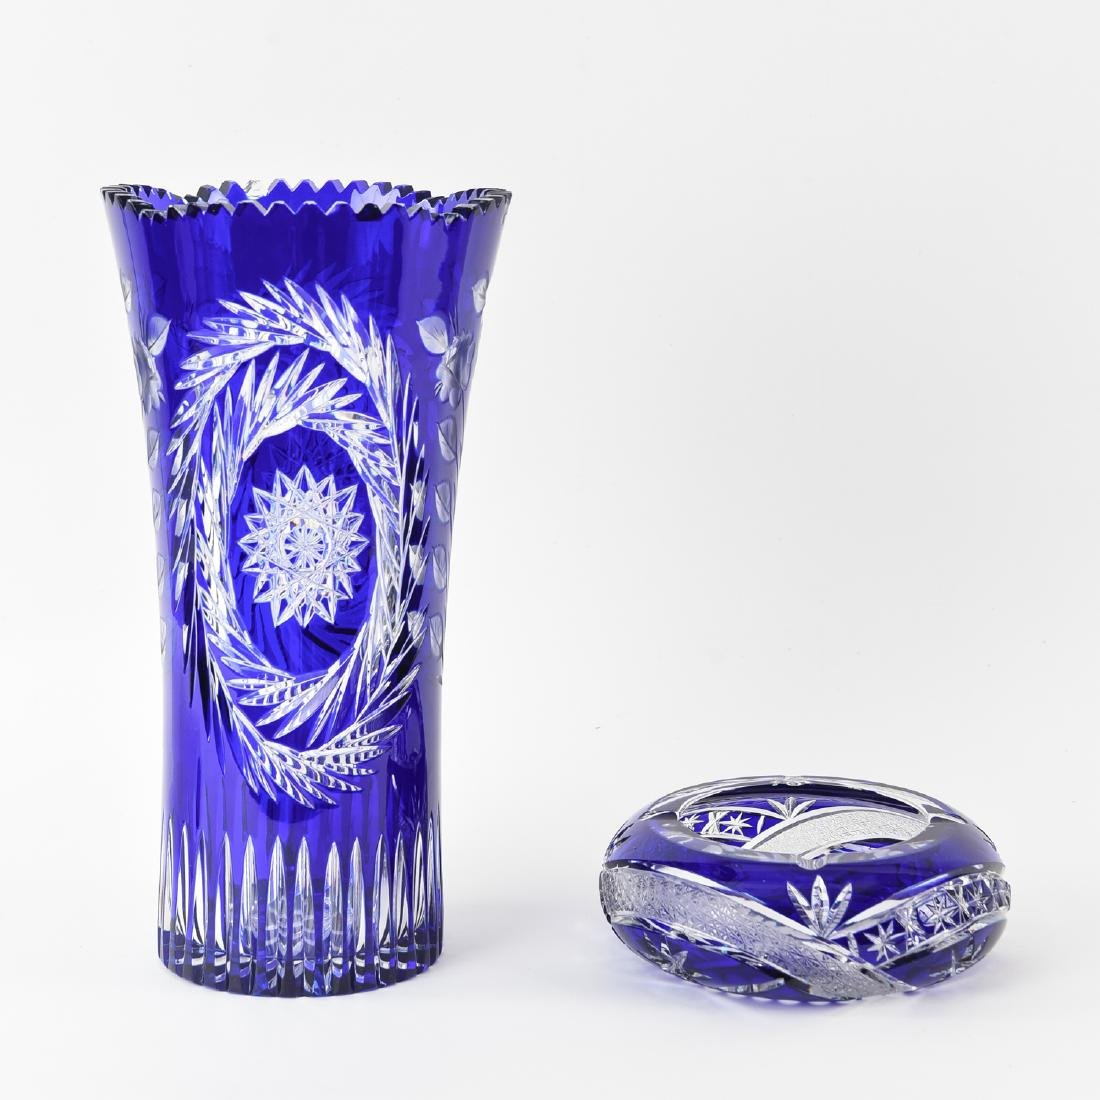 BLUE & CLEAR CUT CRYSTAL VASE & BOWL